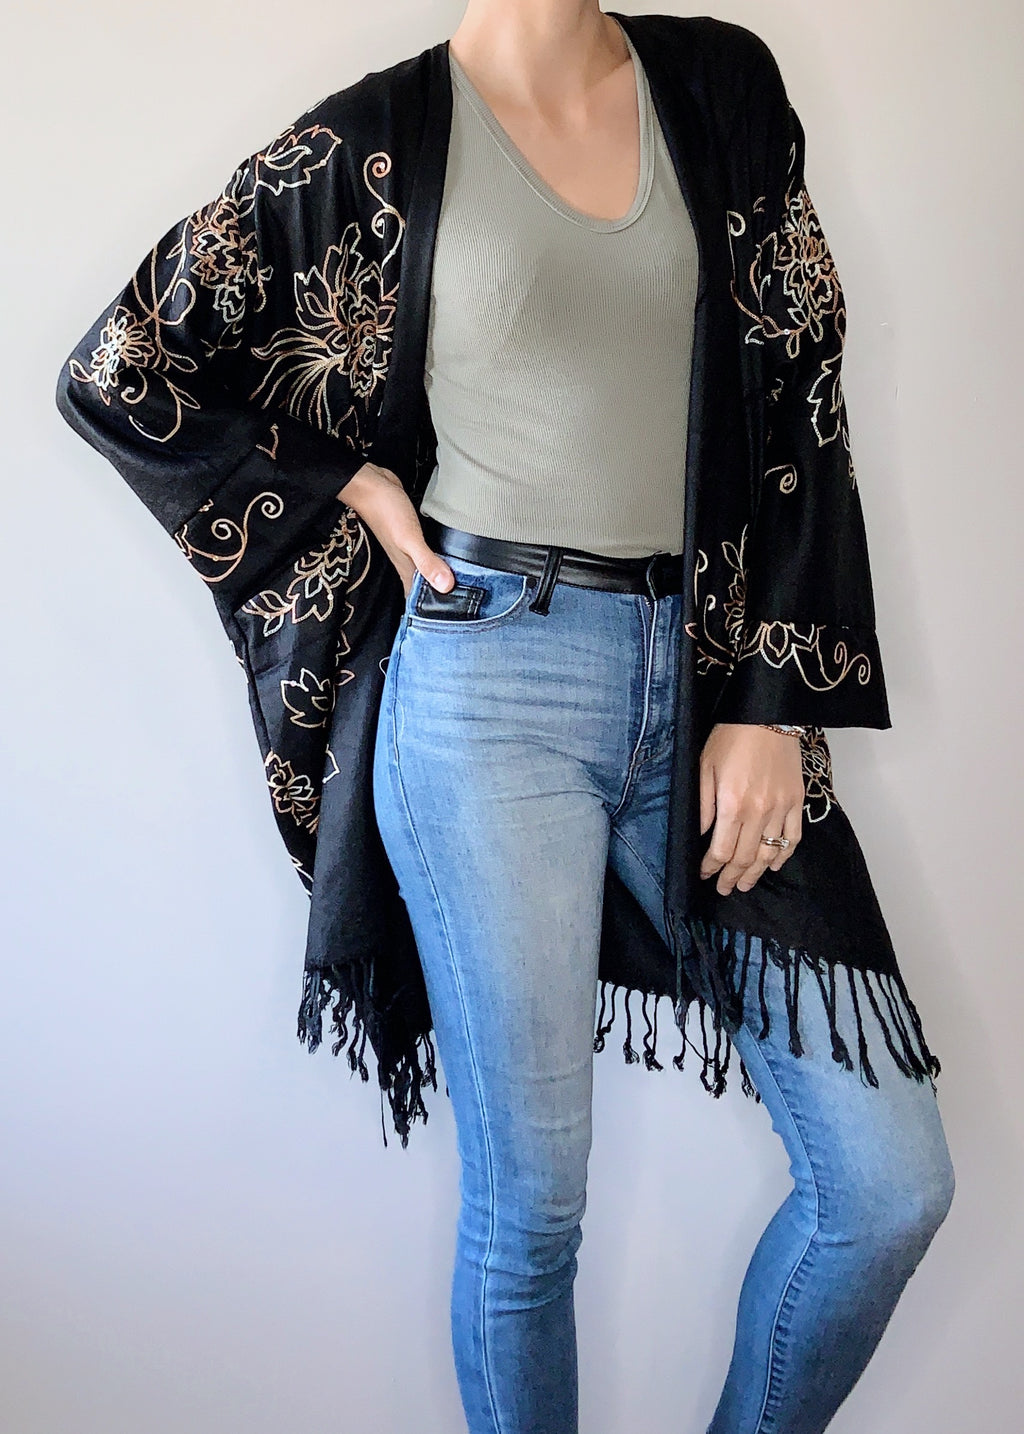 Nostalgia Boho Jacket in Black with Cuffs